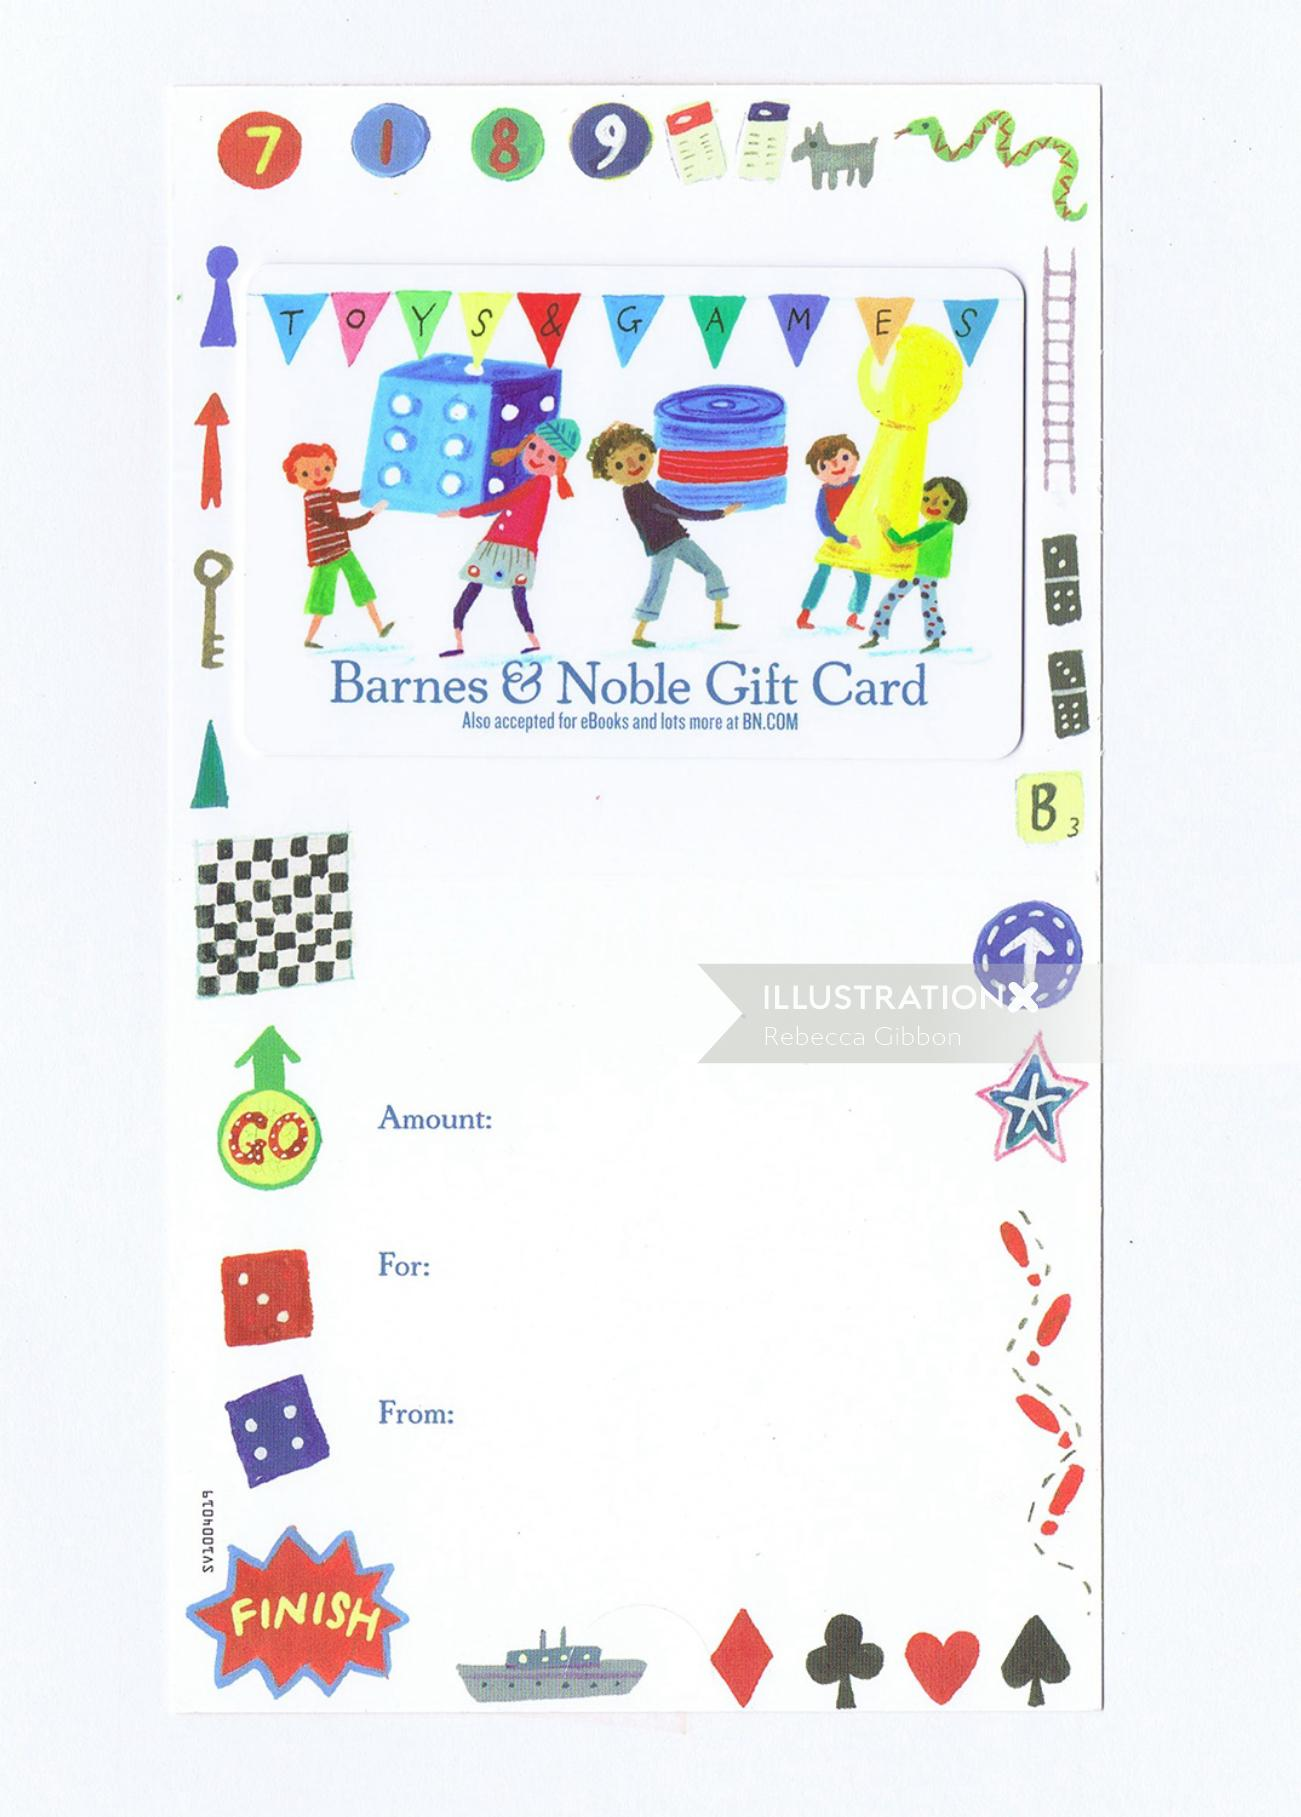 barnes and noble gift card design